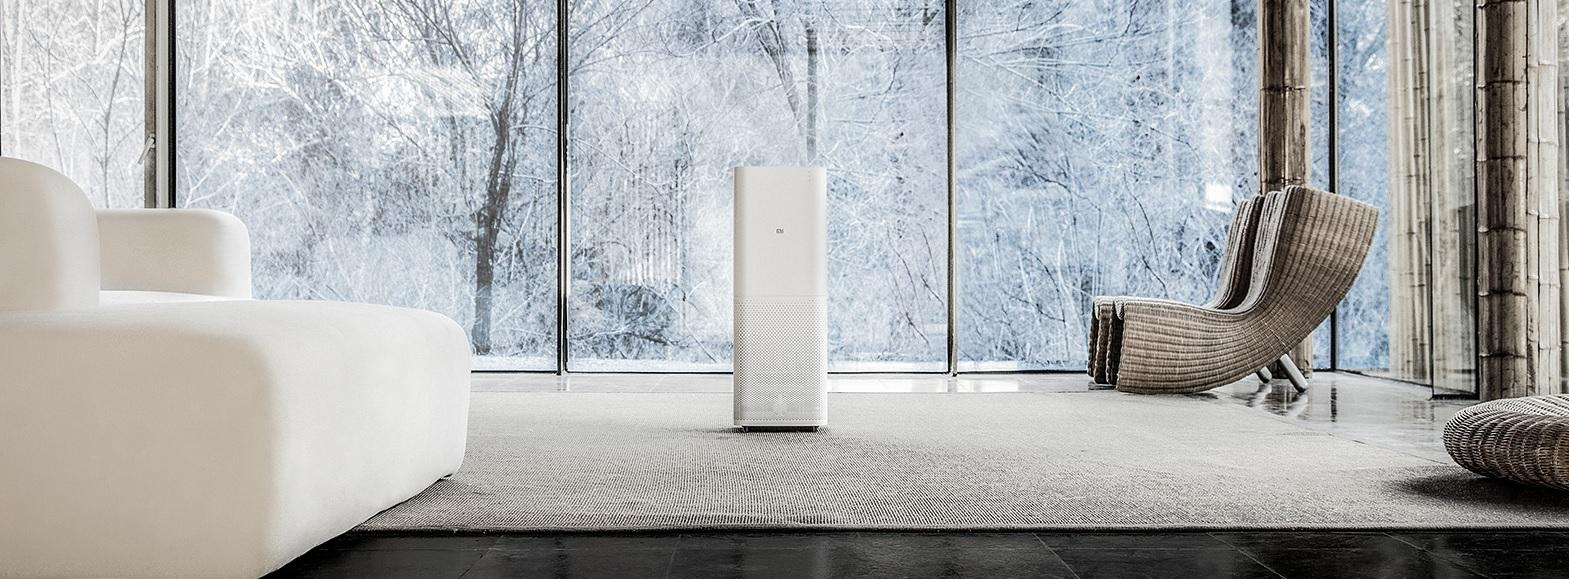 XIAOMI XIAO MI ZHI MI ZHIMI SMART AIR PURIFIER WITH FILTER PM2.5 WIFI